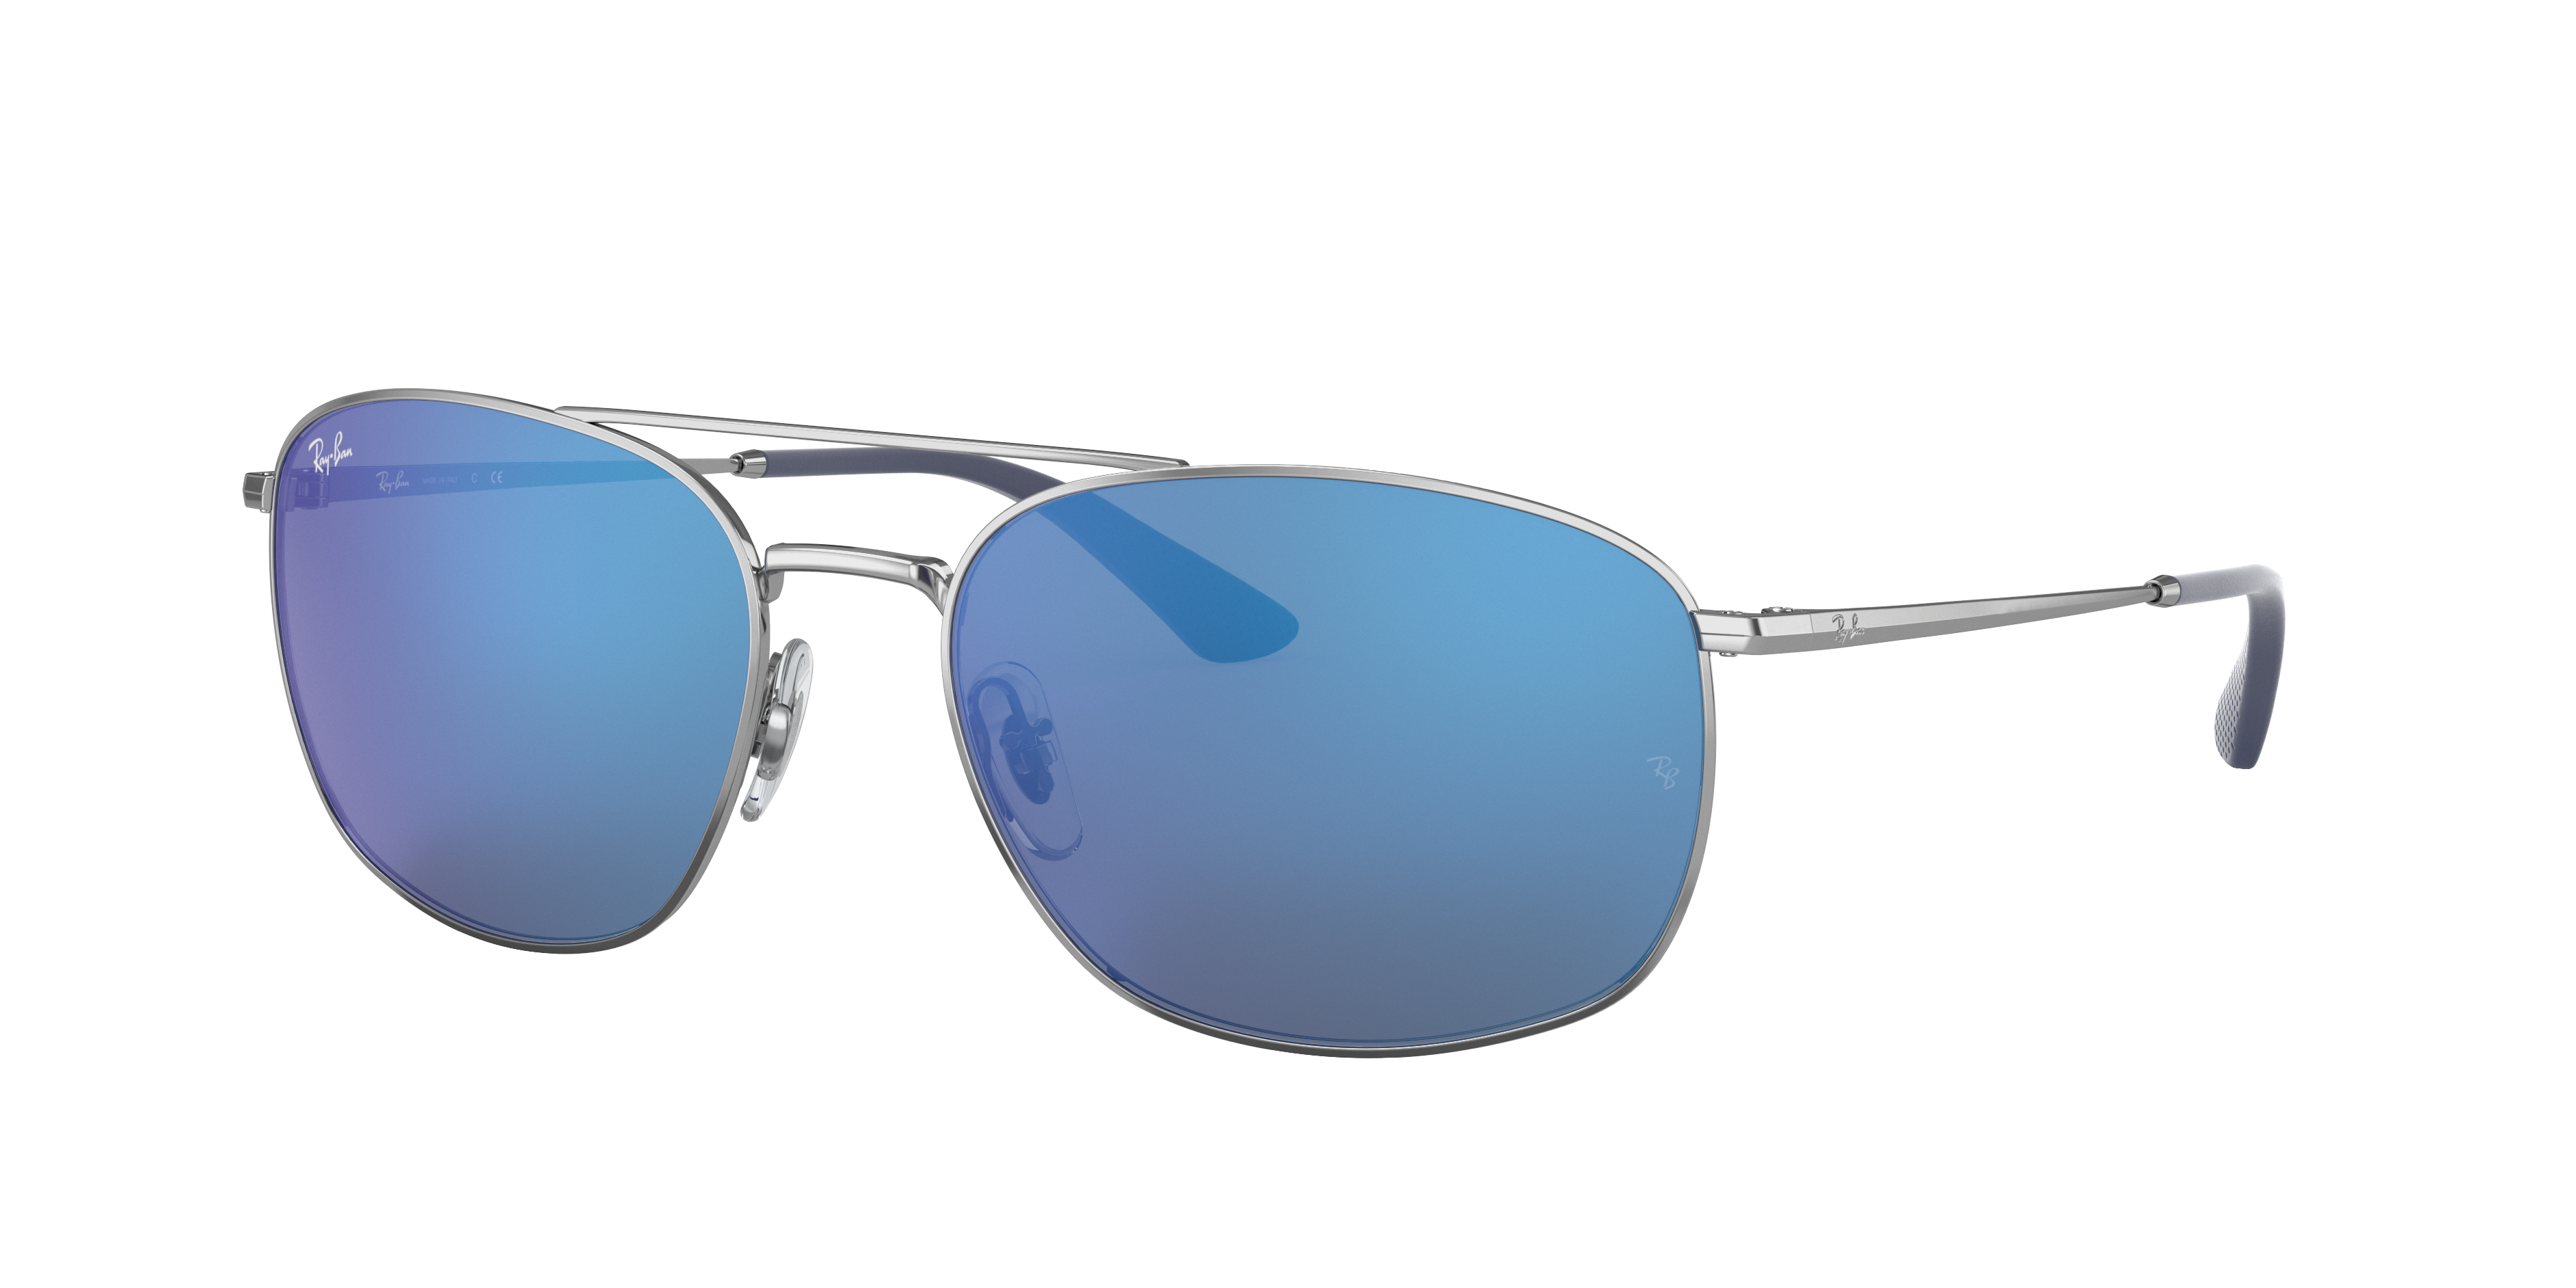 Ray-Ban Rb3654 Silver, Blue Lenses - RB3654